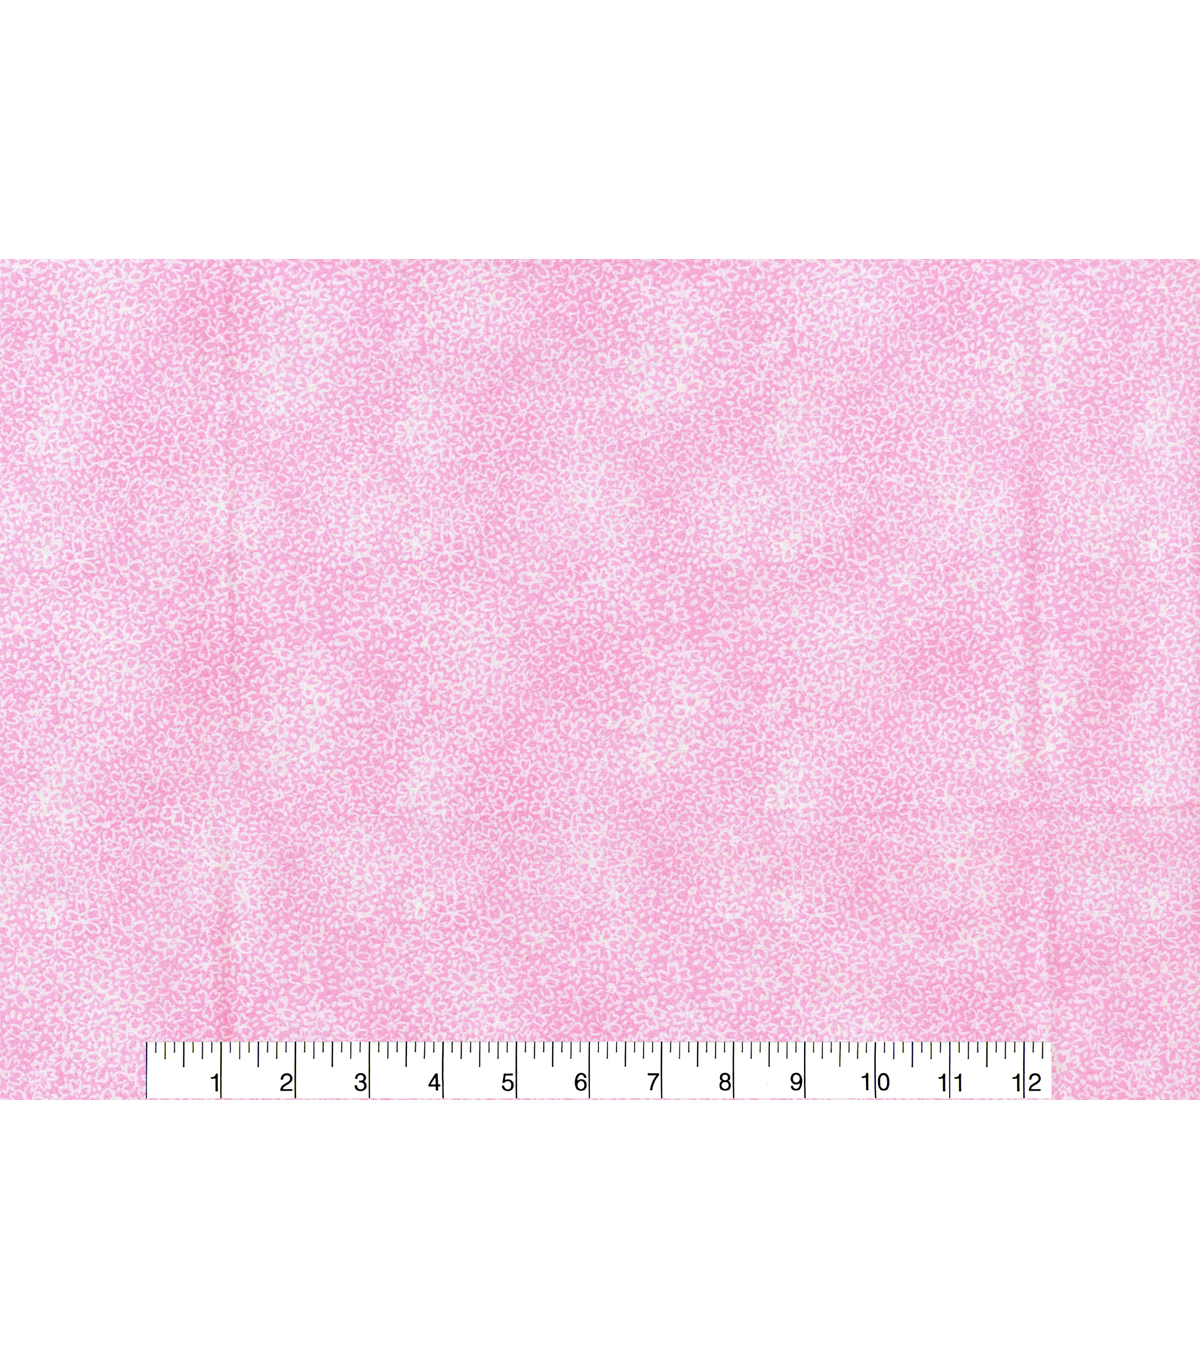 Keepsake Calico Cotton Fabric 43\u0027\u0027-Light Pink Packed Ditsy Floral